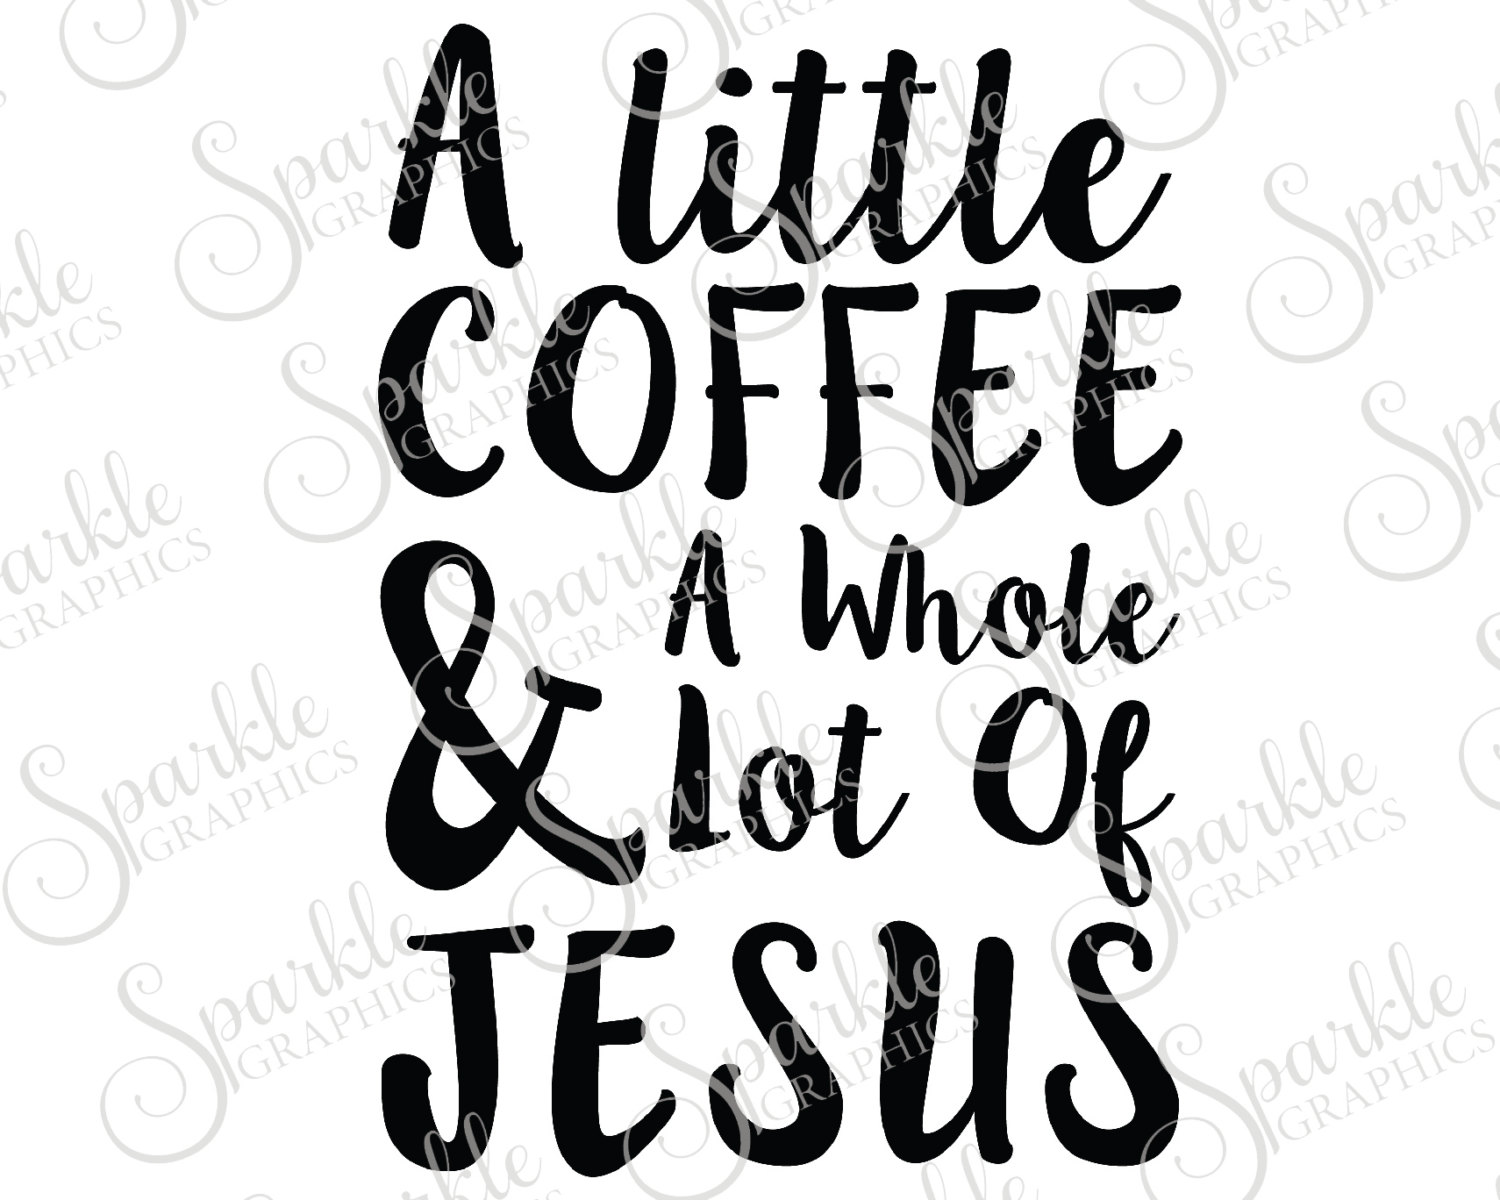 Amd clipart coffee Clipart Of Jesus Whole Jesus